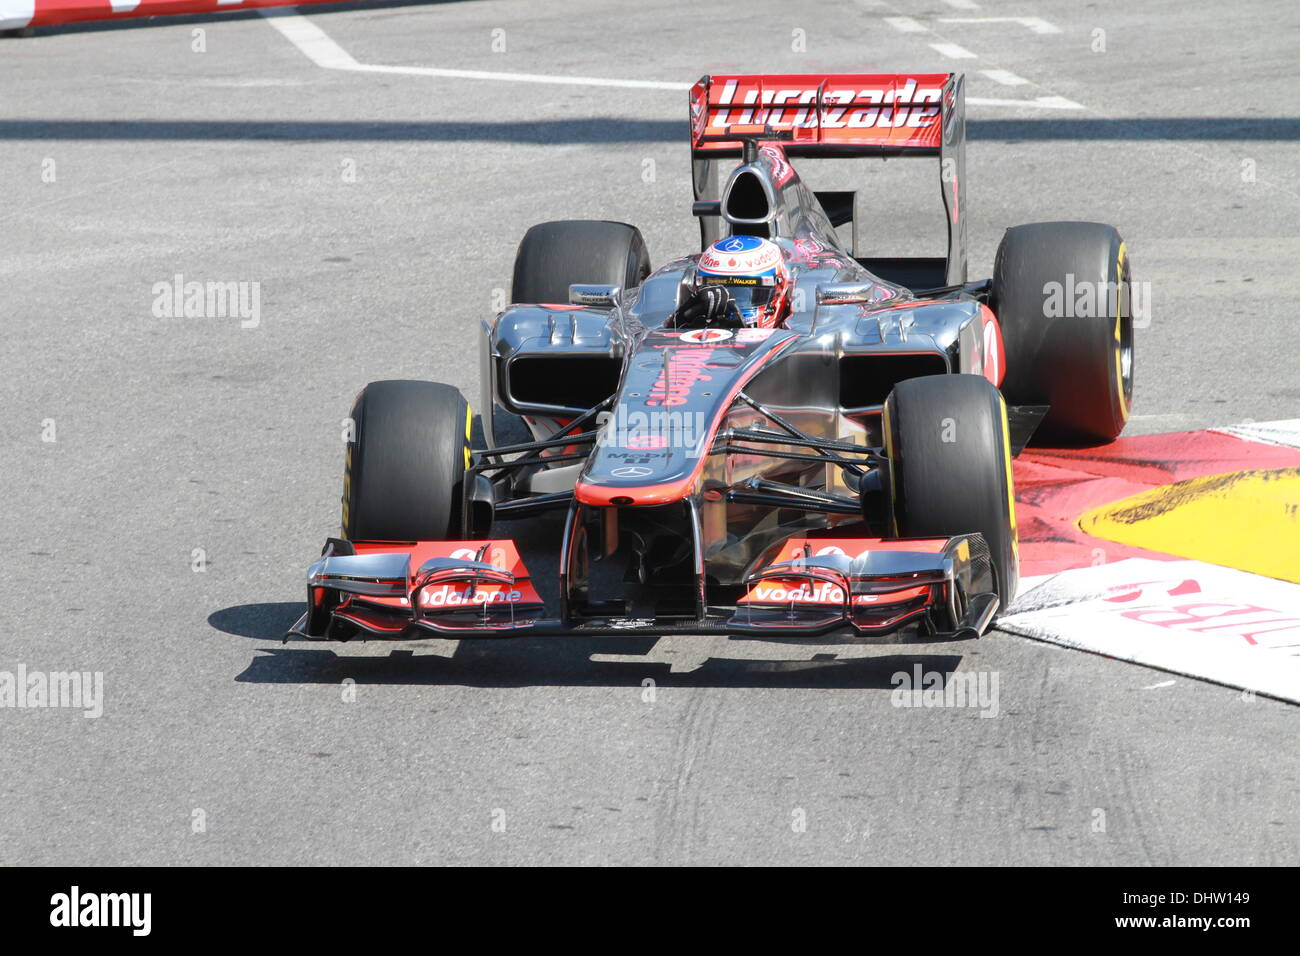 fa63c9d1393 Mclaren Mercedes F1 Stock Photos   Mclaren Mercedes F1 Stock Images ...